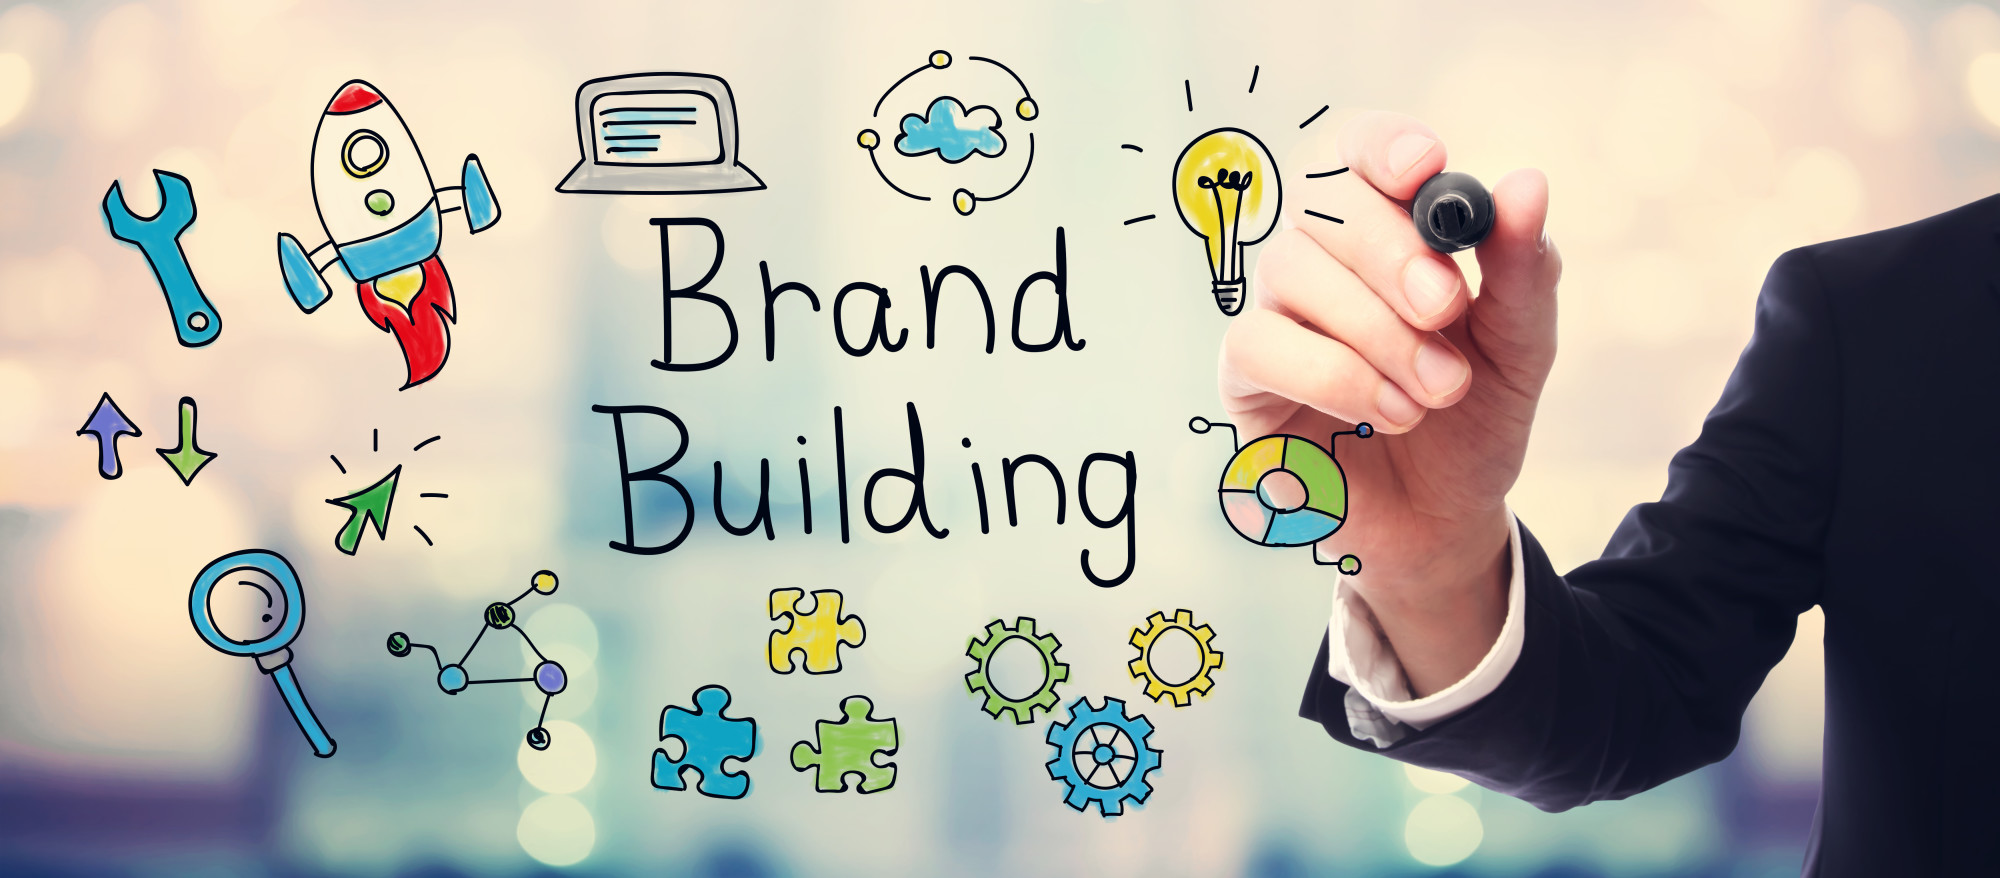 8 Brilliant Tips to Catapult Your Brand Building Through Social Media